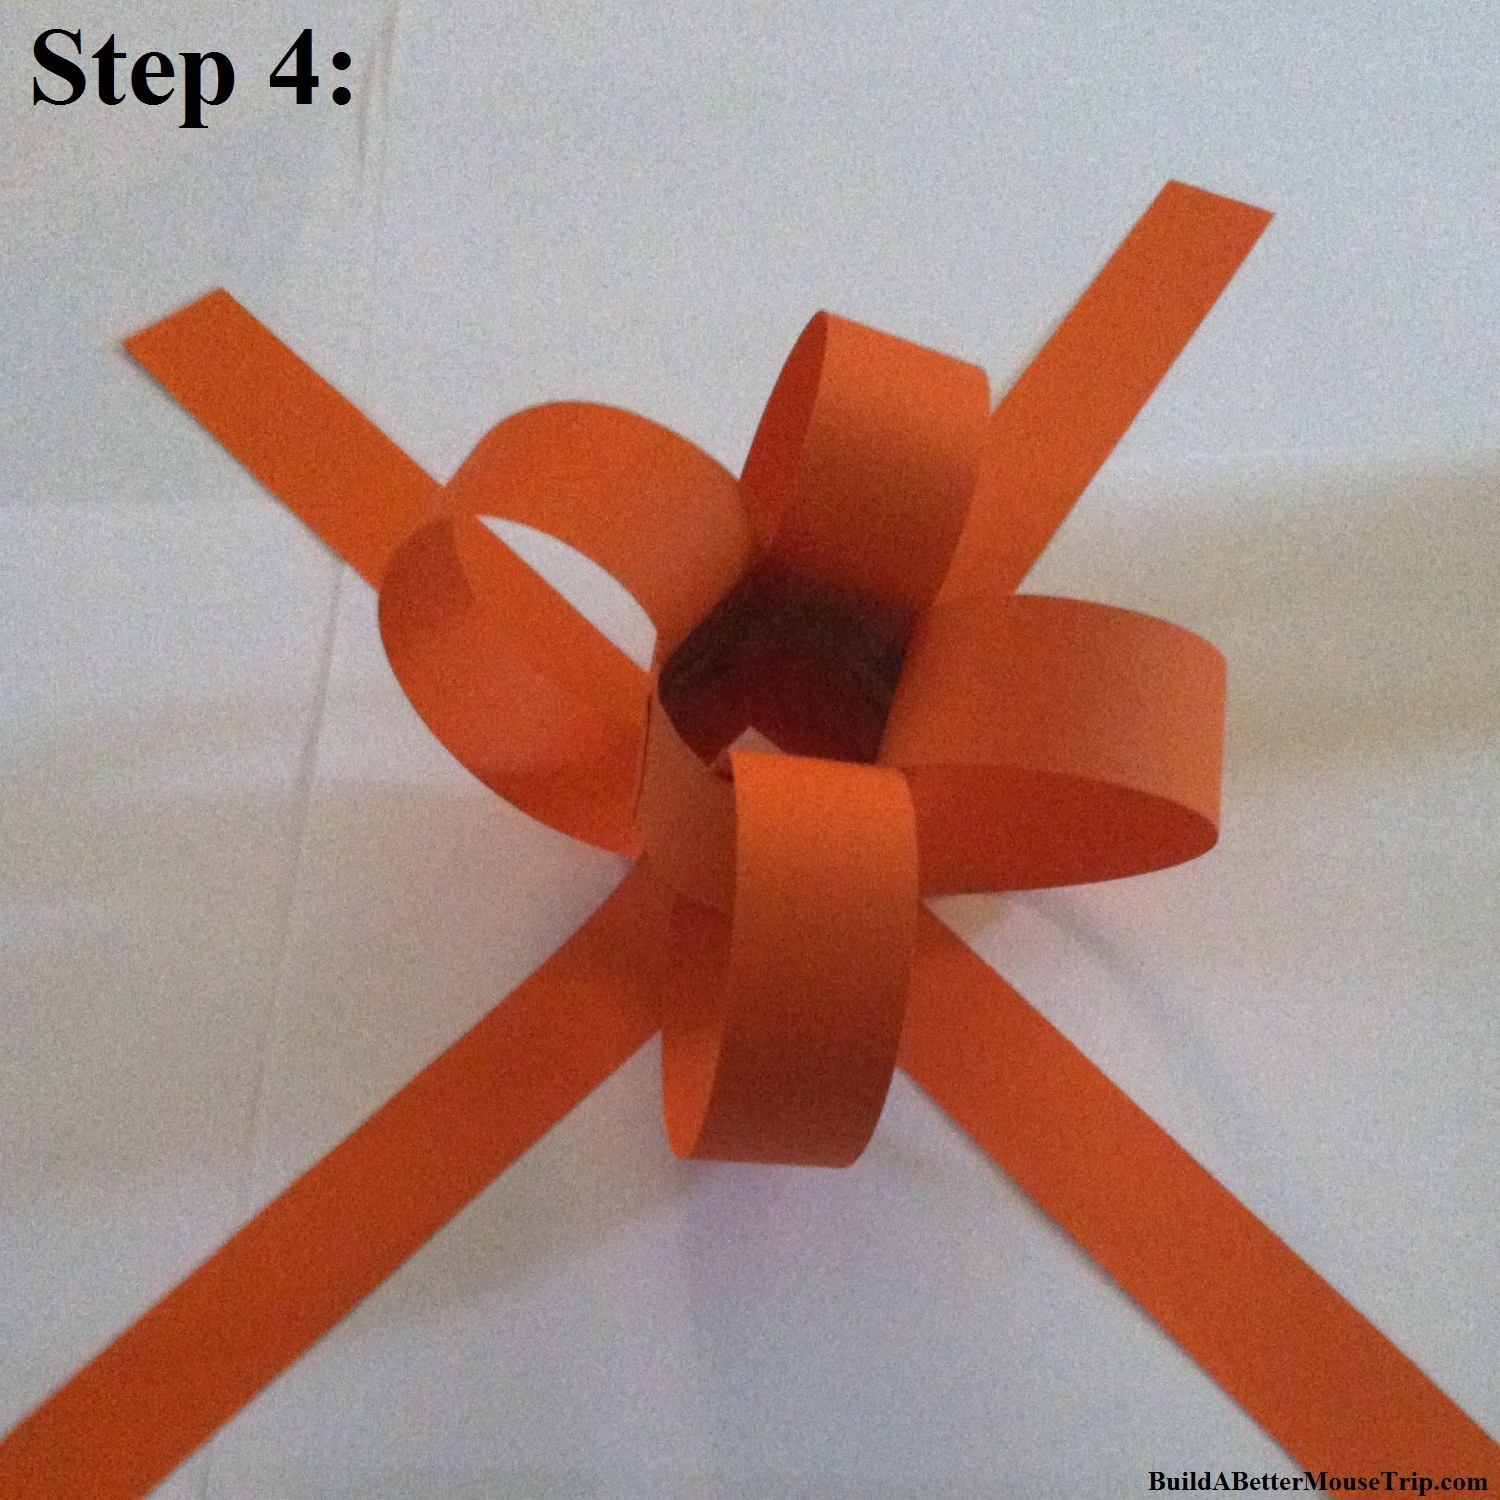 Step 4 - Attach one end of an orange construction paper strip to the inside of the bottom of the center tube and the other end to the top, using scotch tape or a glue gun.